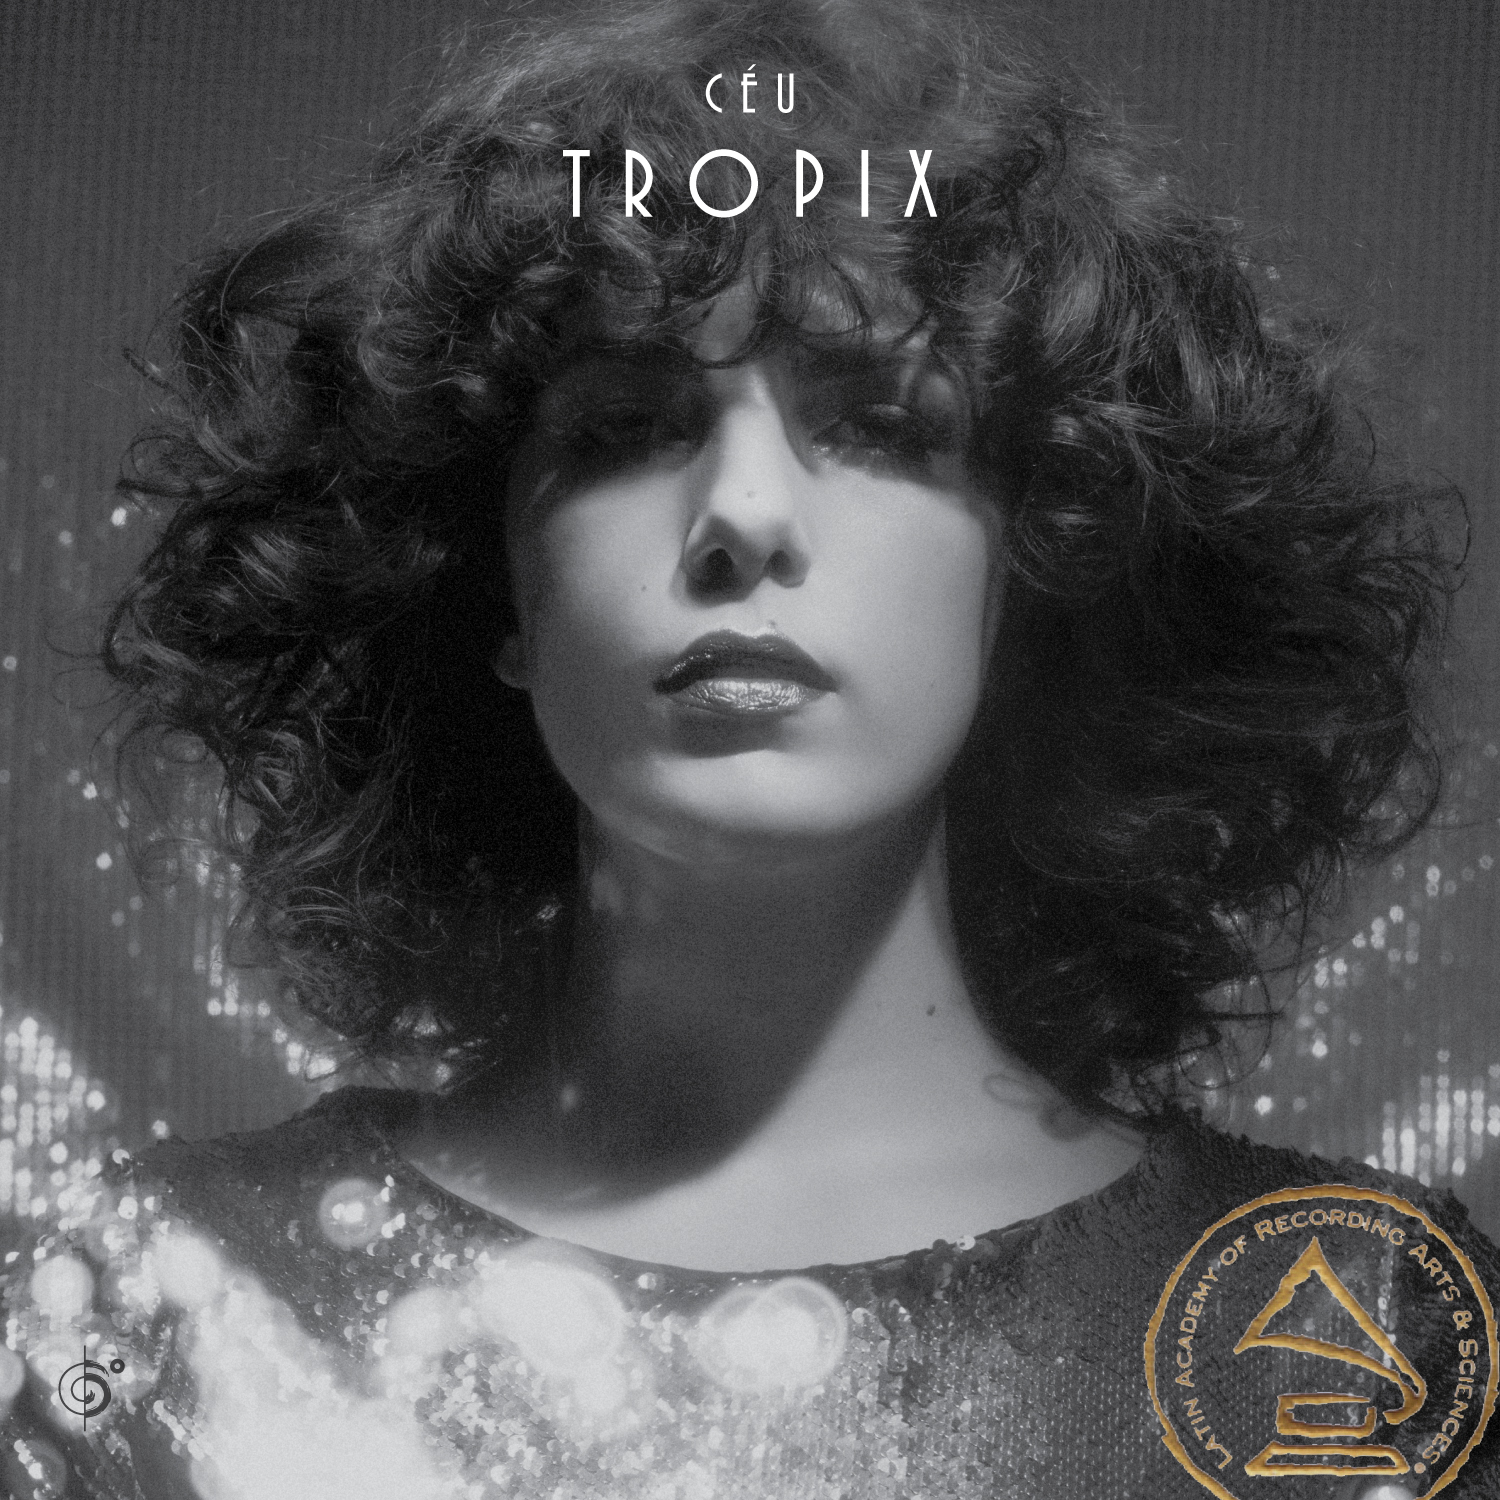 Céu's Tropix got nominated to the Latin Grammys!